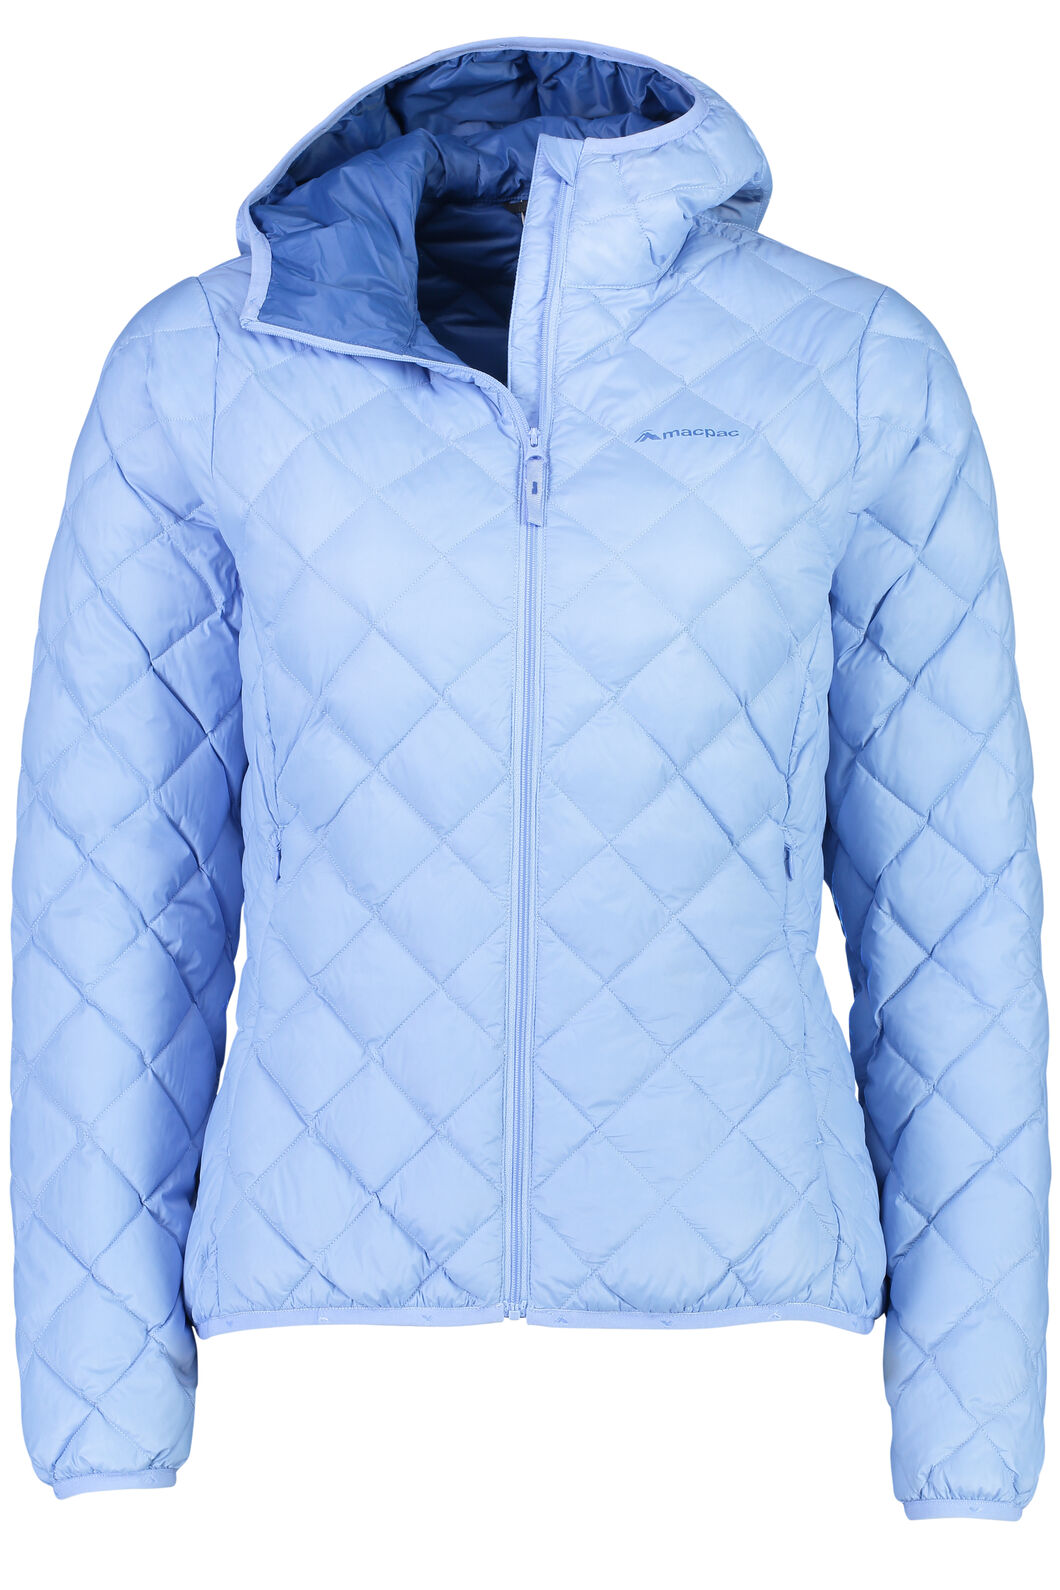 Macpac Uber Light Hooded Down Jacket - Women's, Bright Cobalt/Vista Blue, hi-res